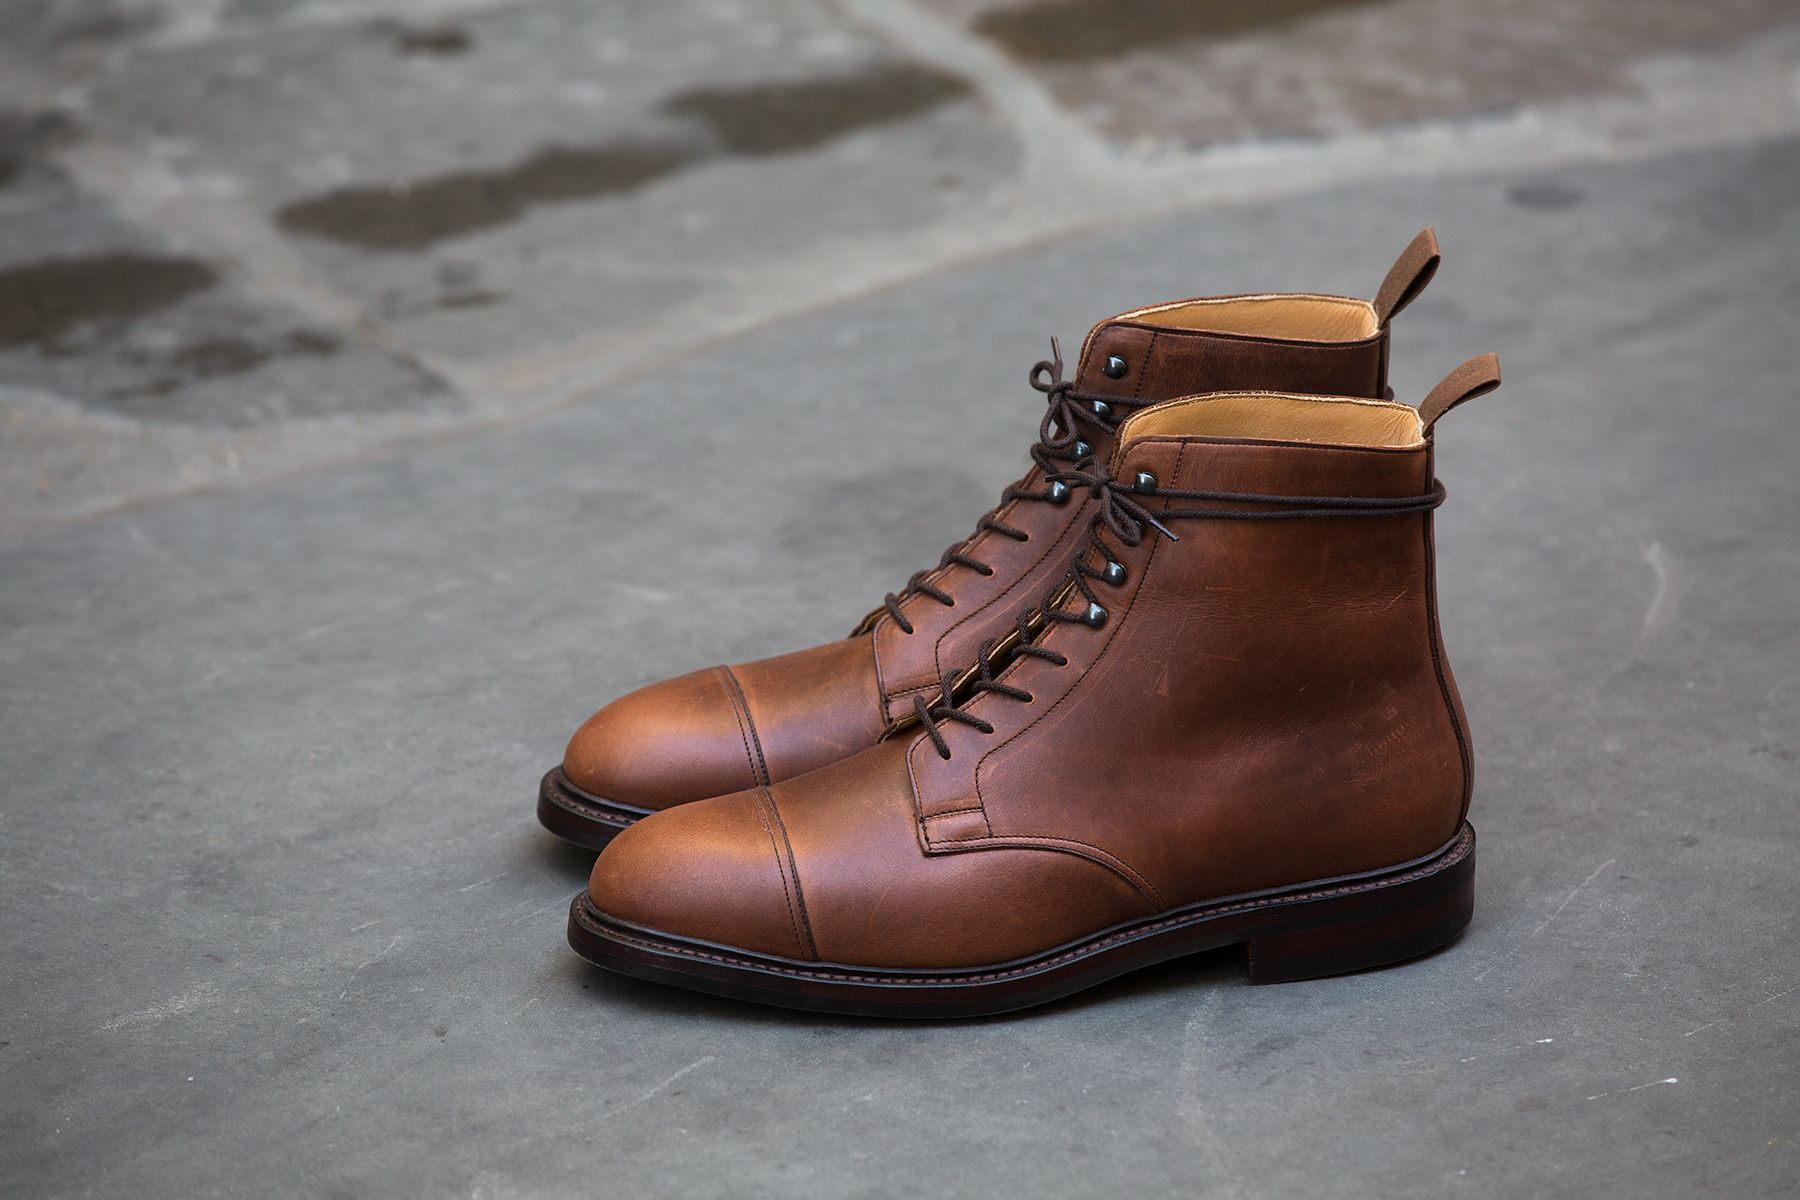 c8ba384d211 Teak Oiled Coniston Boots | Style | Jones boots, Shoes, Shoe boots